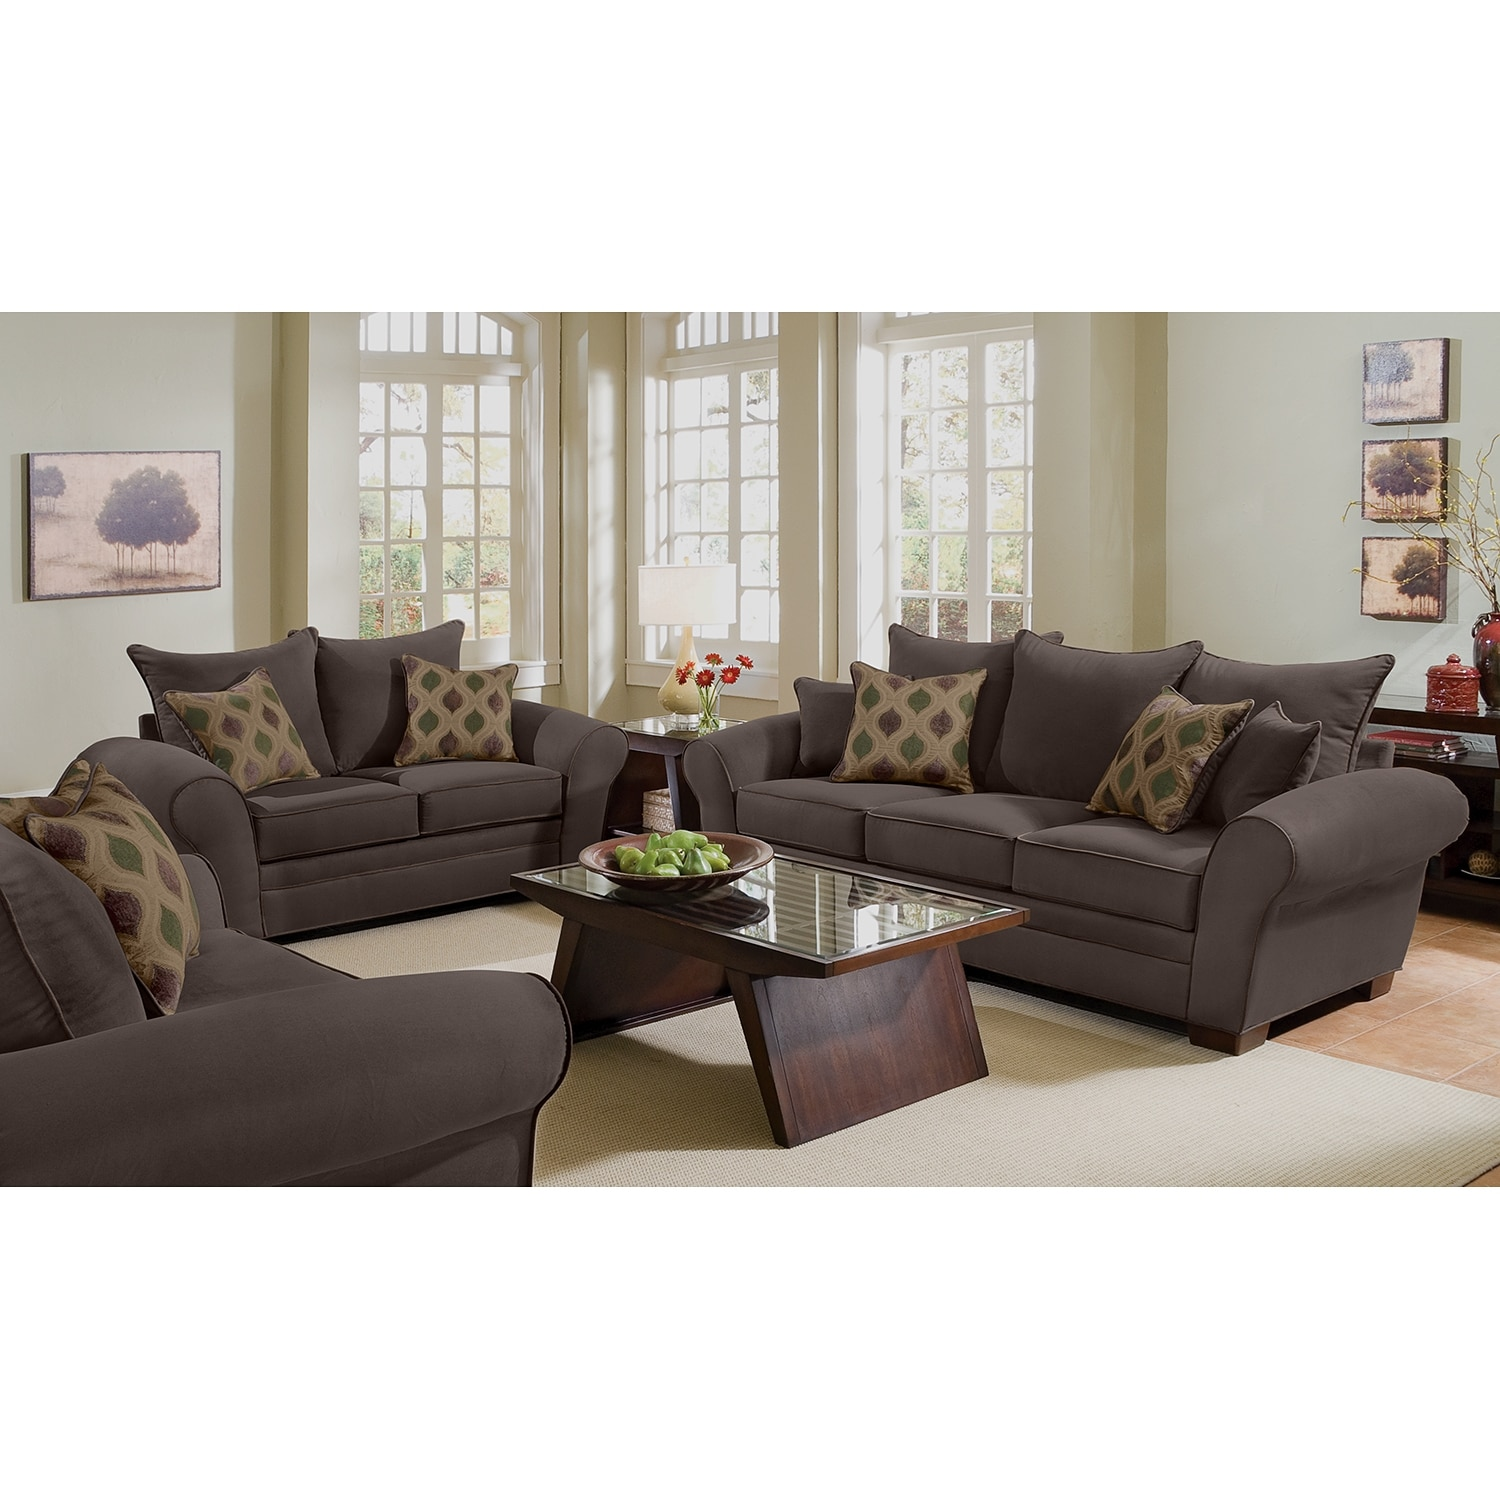 Rendezvous iv 2 pc living room value city furniture for Living room 2 sofas